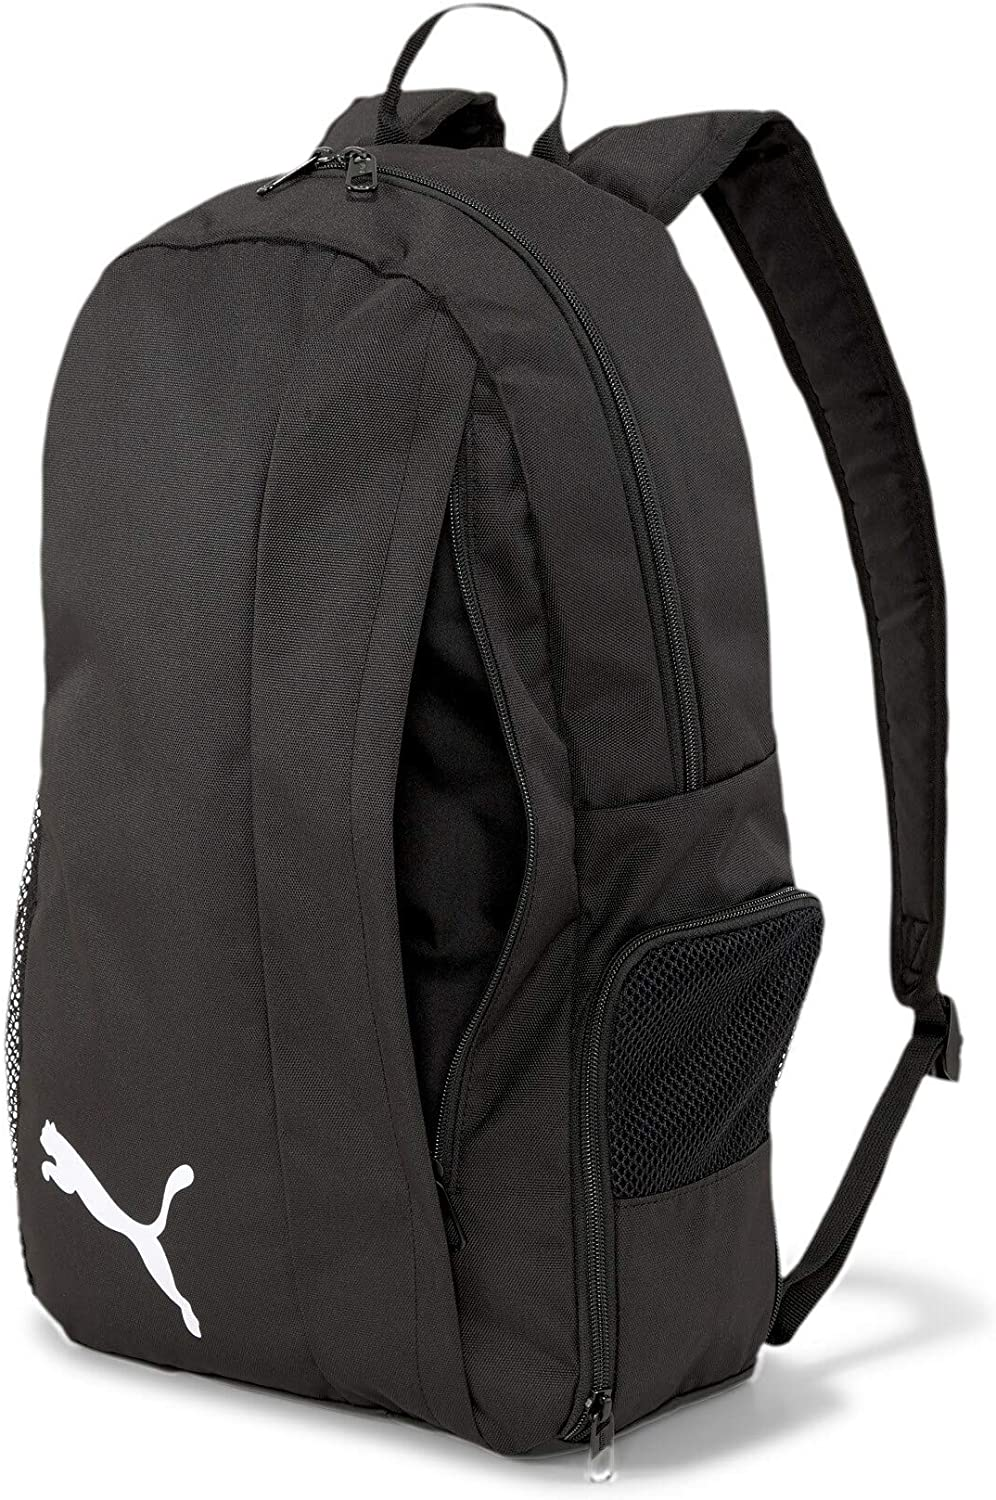 PUMA teamGOAL 23 Backpack with Bottom Compartment